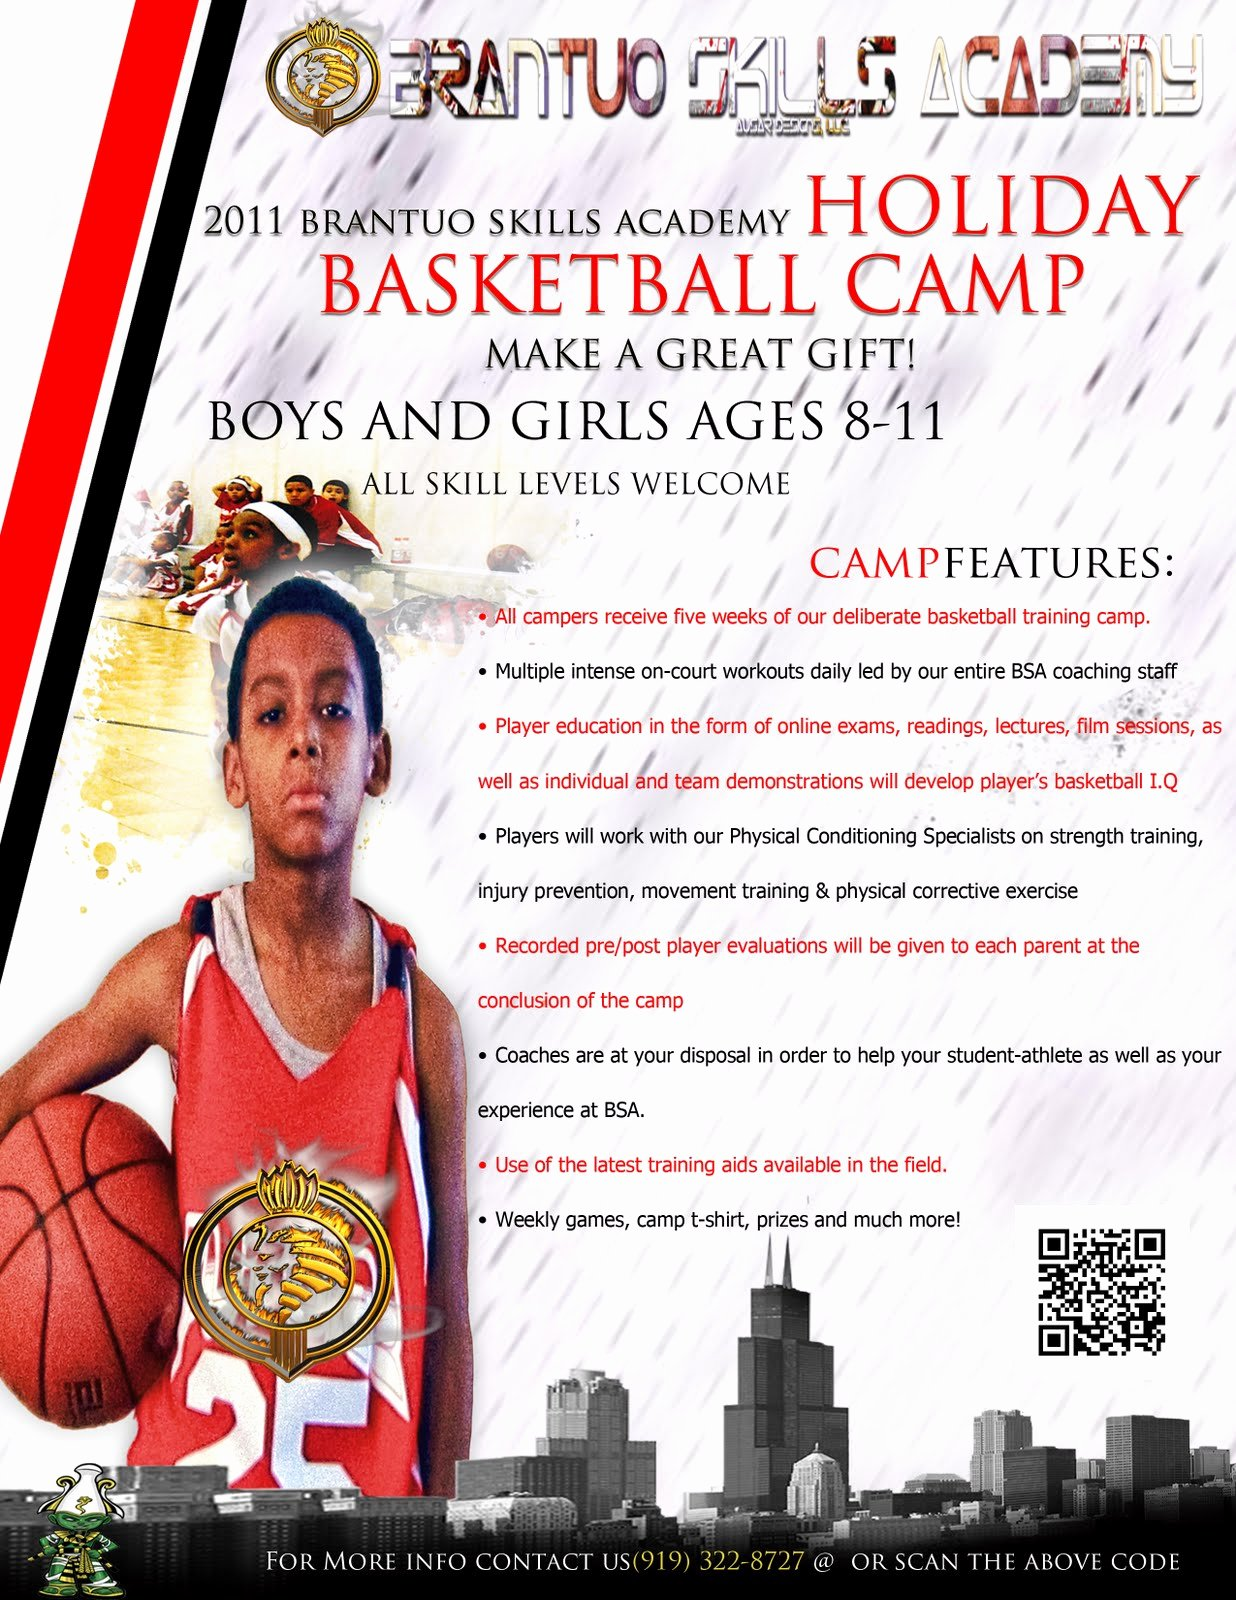 Basketball Camp Flyer Template Beautiful the Brantuo Skills Academy November 2011